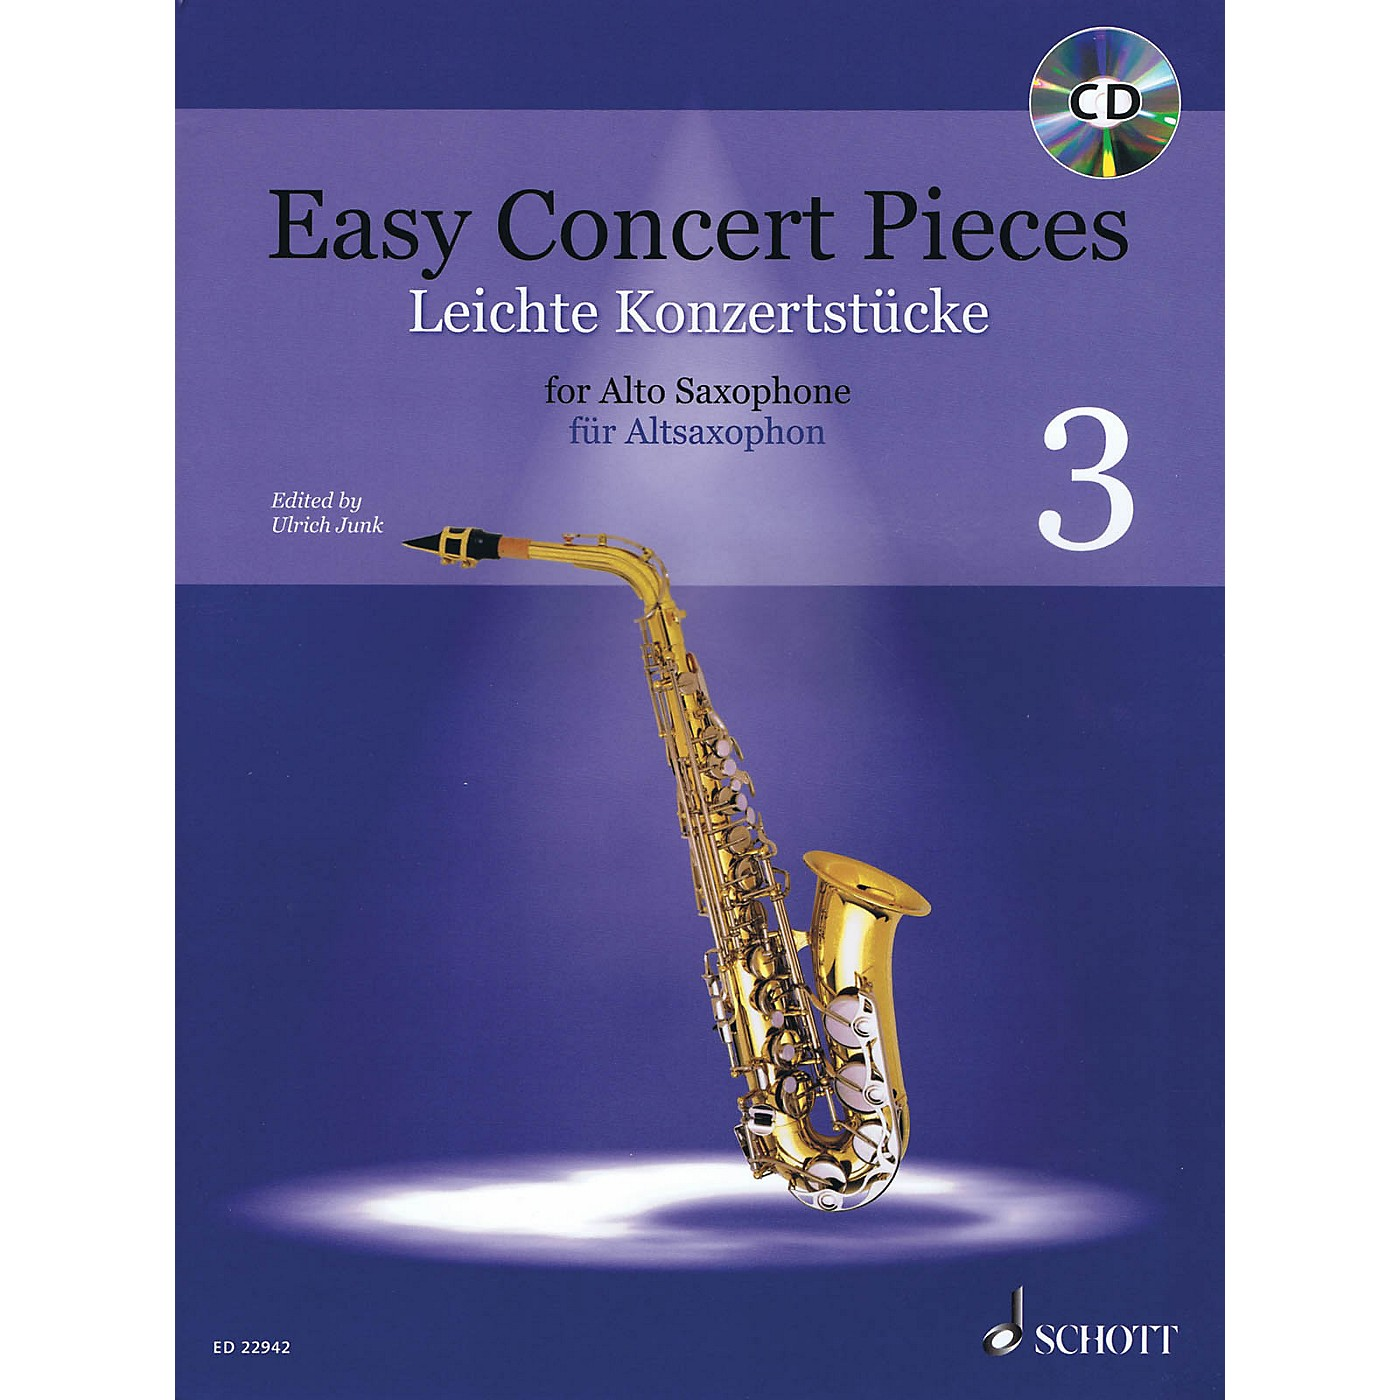 Schott Easy Concert Pieces Book 3 (17 Pieces from 6 Centuries) Alto Saxophone and Piano Book/CD thumbnail